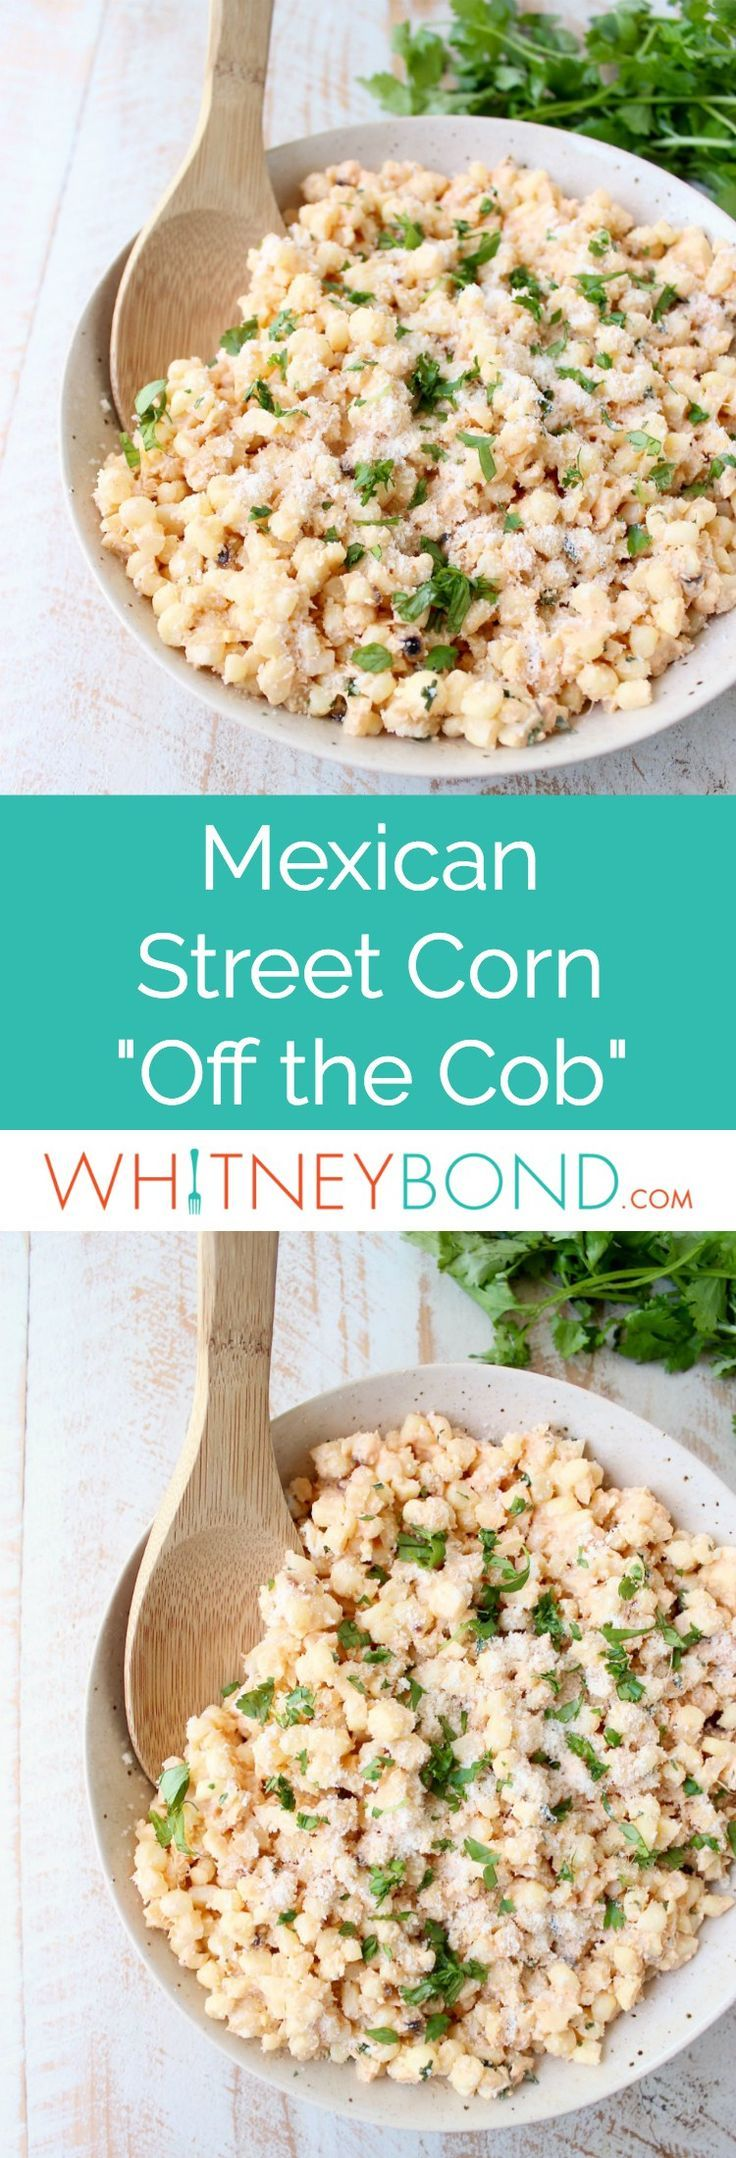 """Deconstructed Mexican Street Corn combines grilled corn """"off the cob"""", cilantro, sour cream, lime juice & parmesan cheese for an amazingly flavorful side dish recipe!"""